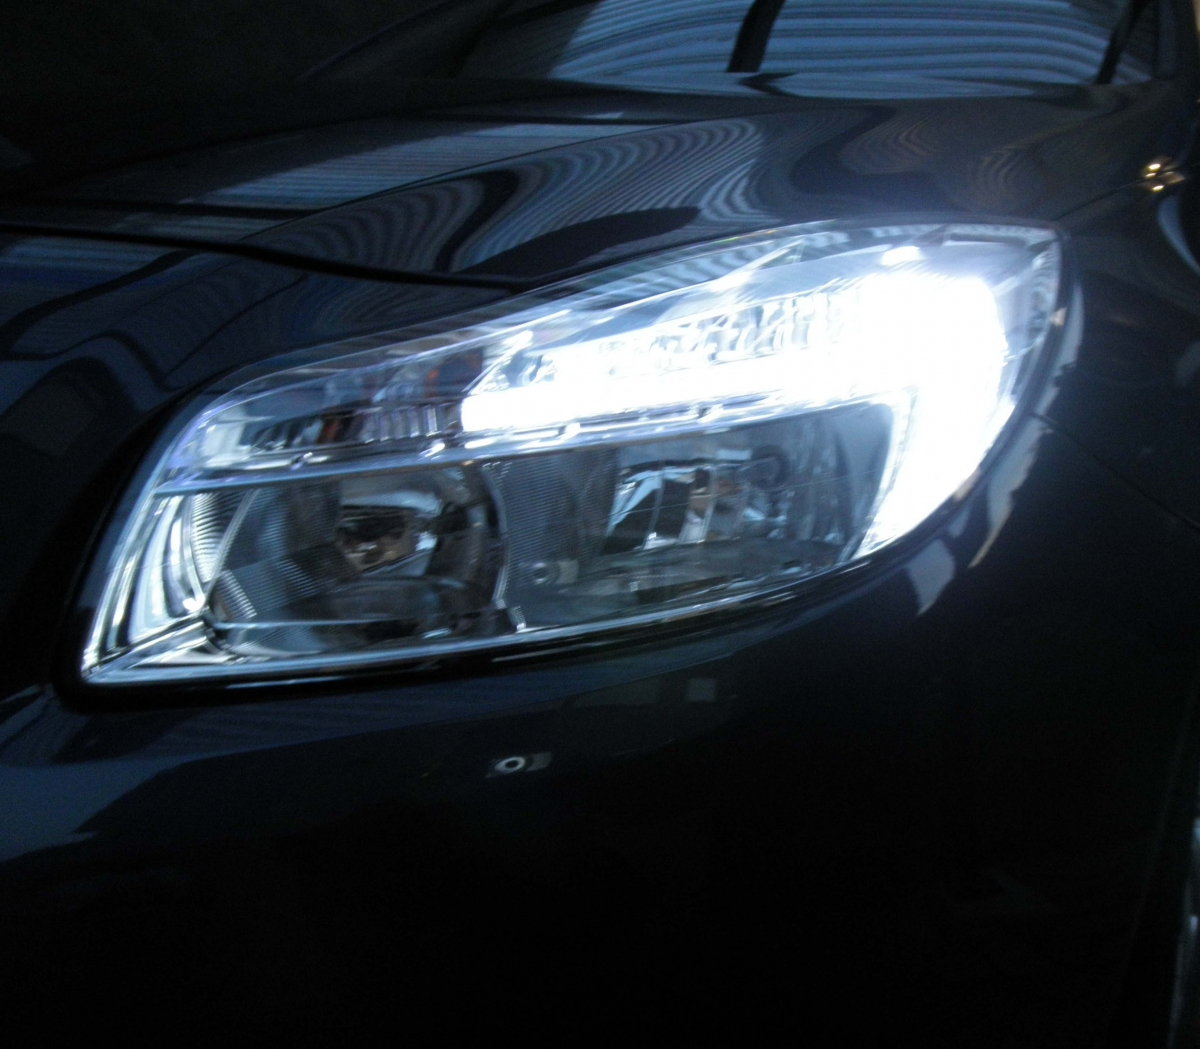 Led Verlichting Astra G Led Dagrijverlichting Opel Astra J